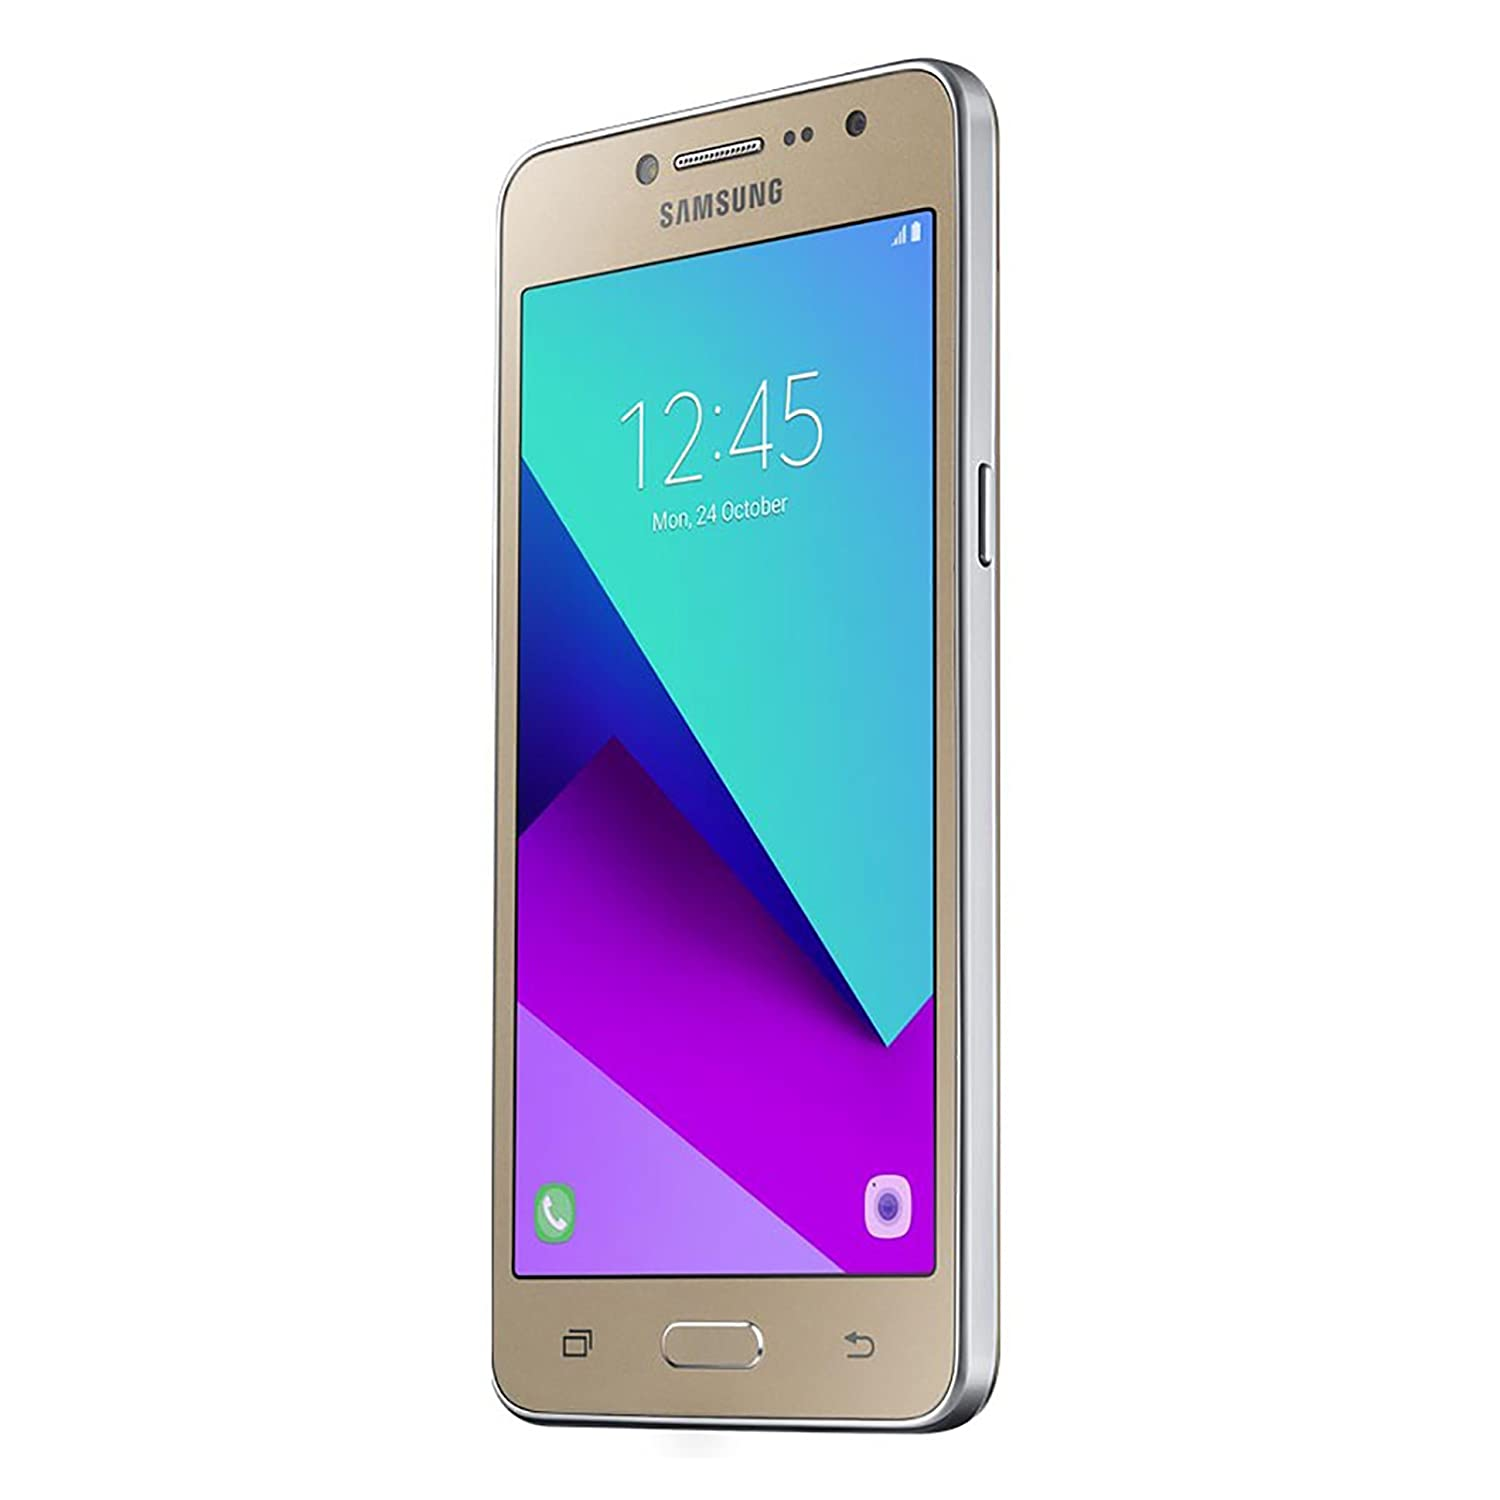 Samsung Galaxy J2 Prime 2016 Unlocked SM-G532M Duos 4G LTE US & Latin Bands (Gold) - International Version